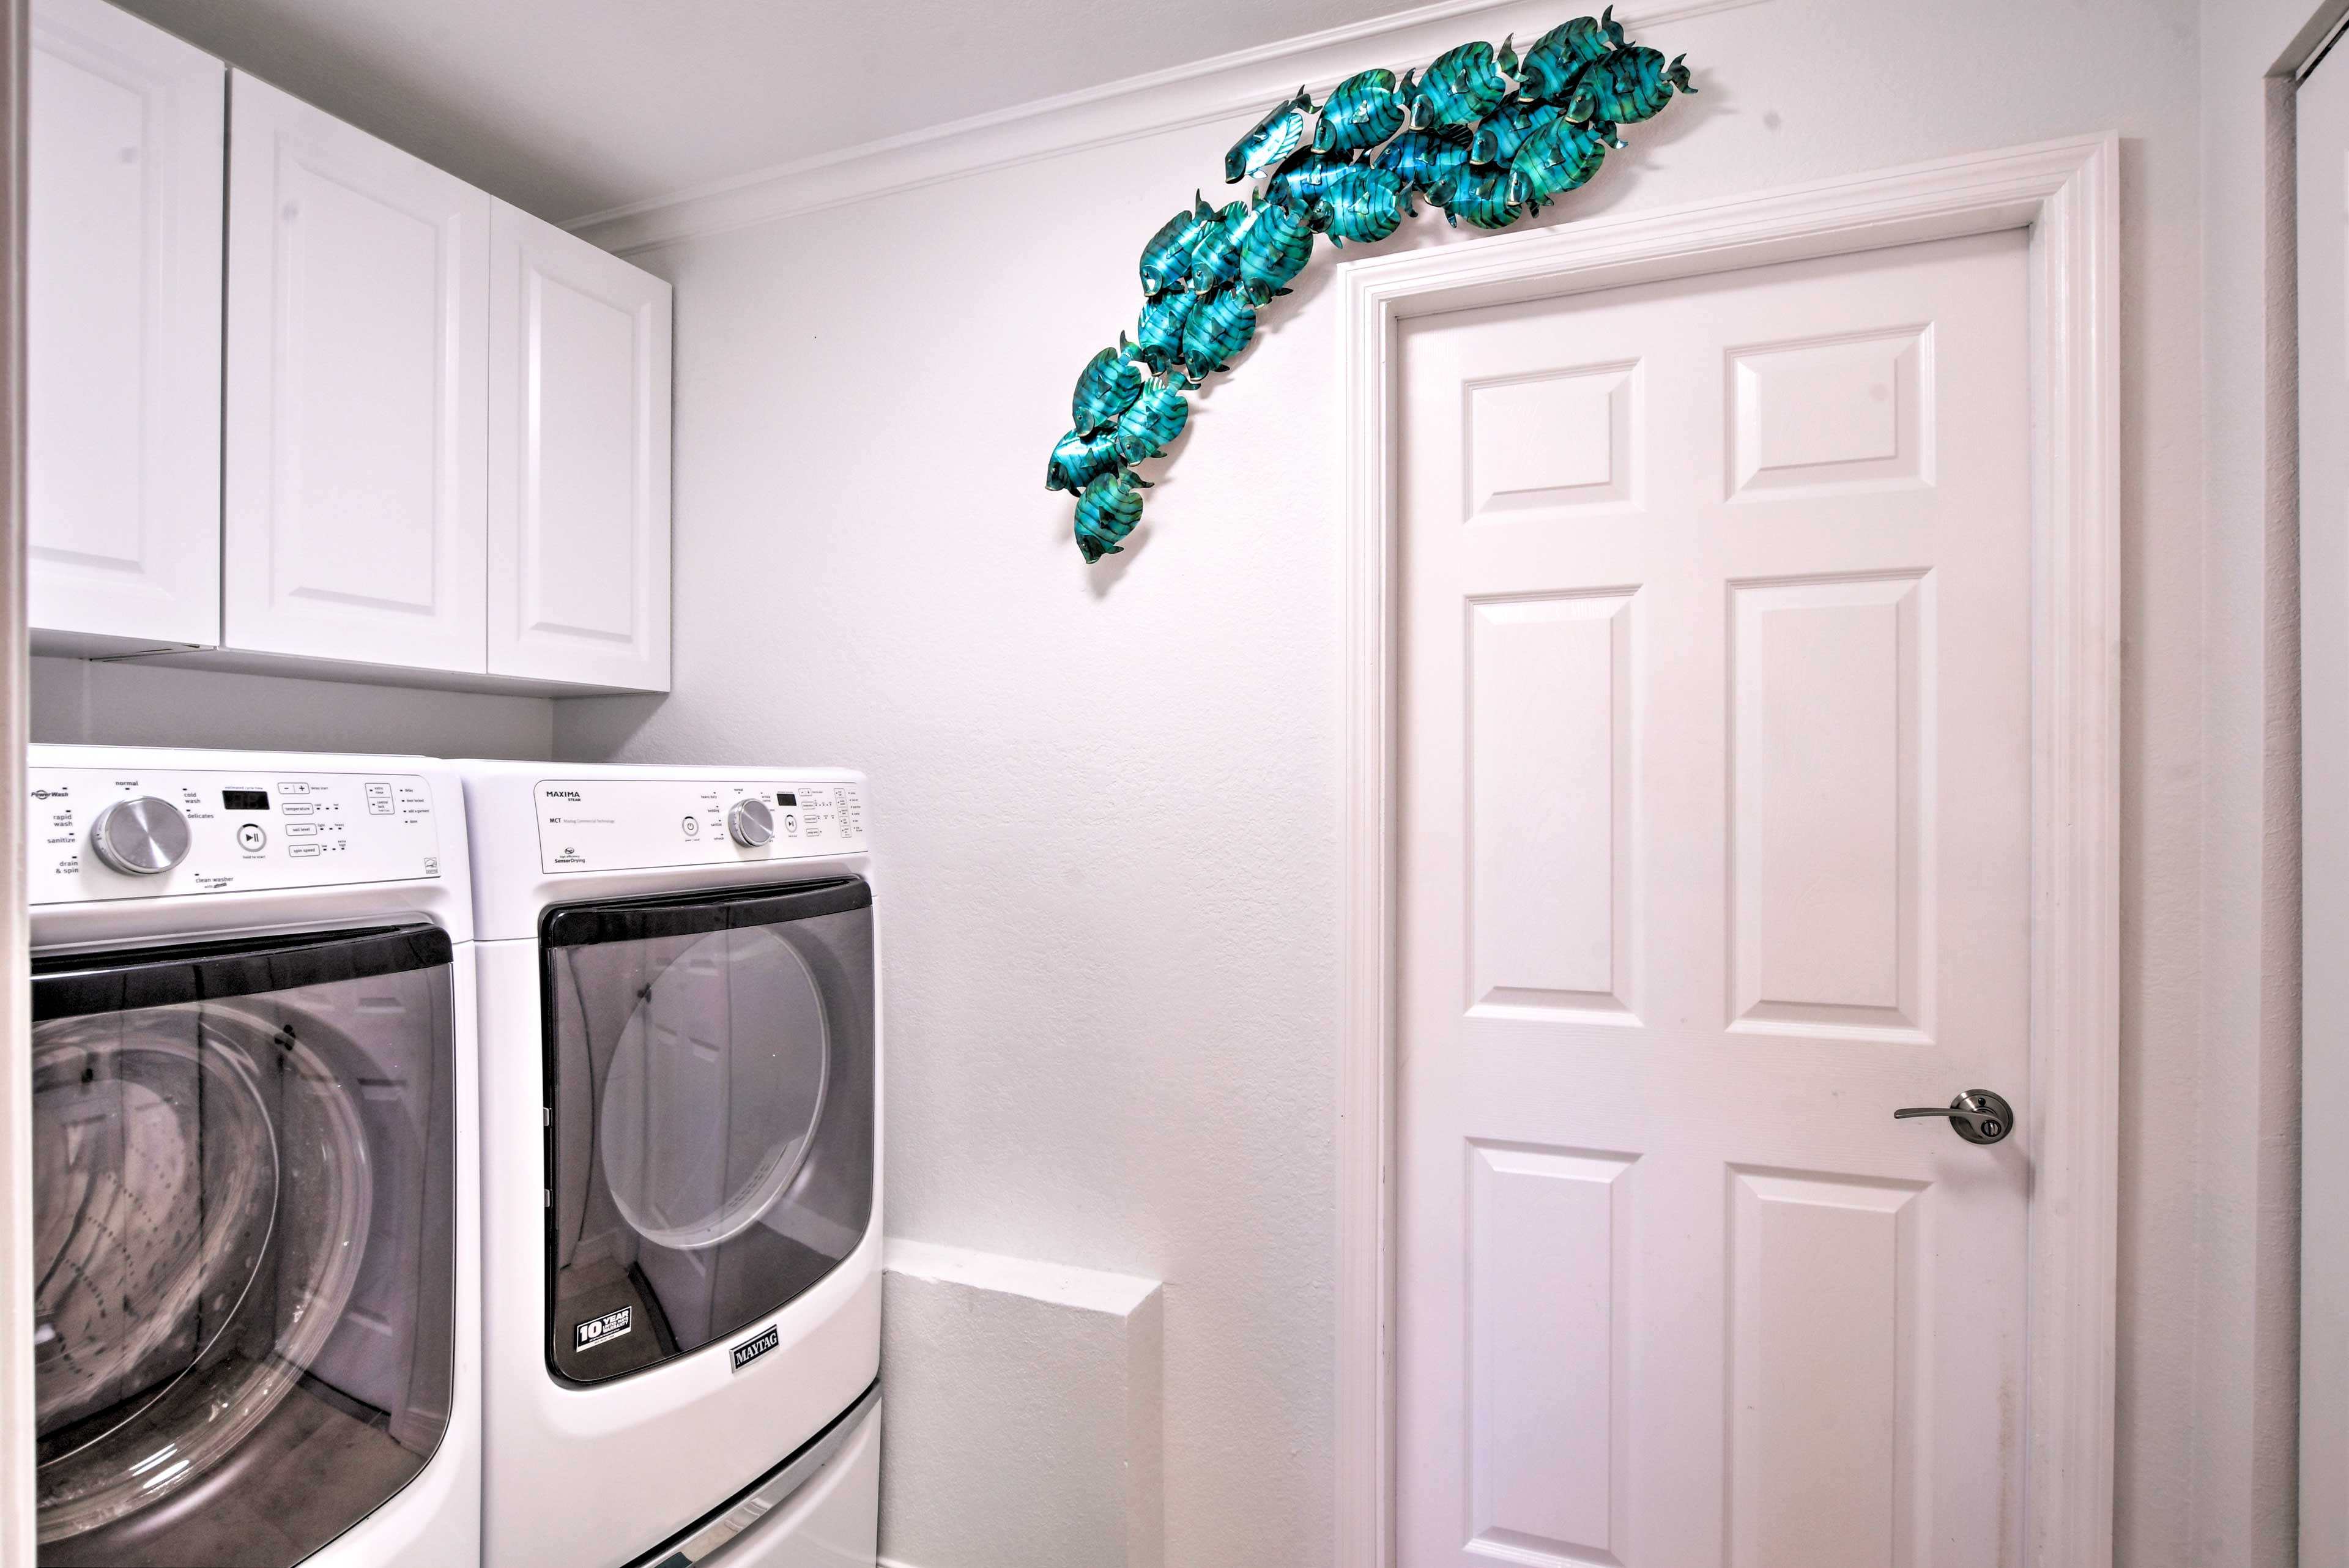 Throw your used swim trunks in the laundry machines.